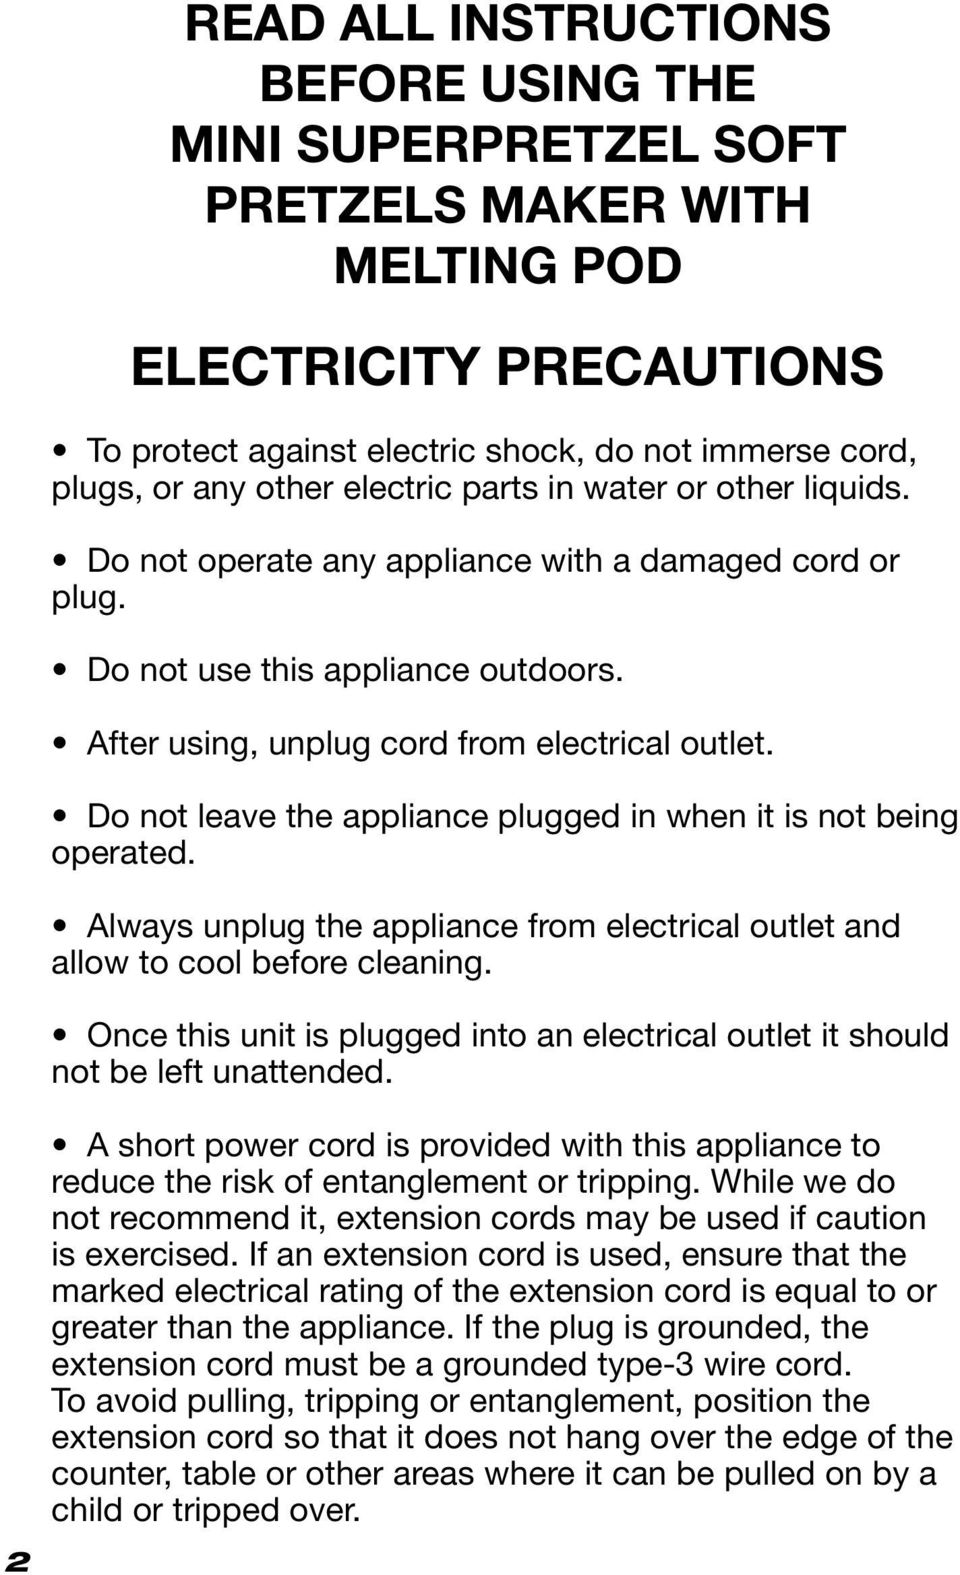 Do not leave the appliance plugged in when it is not being operated. Always unplug the appliance from electrical outlet and allow to cool before cleaning.